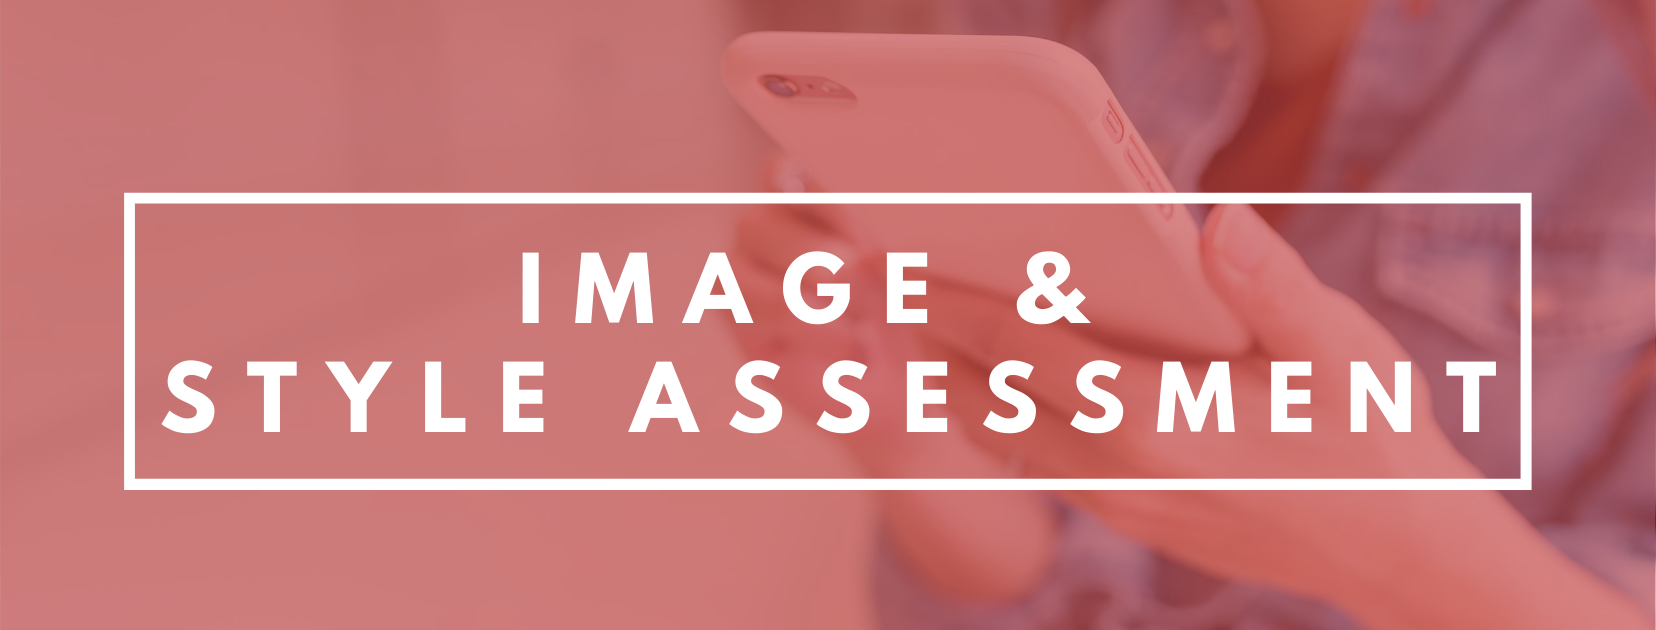 Image and style assessment